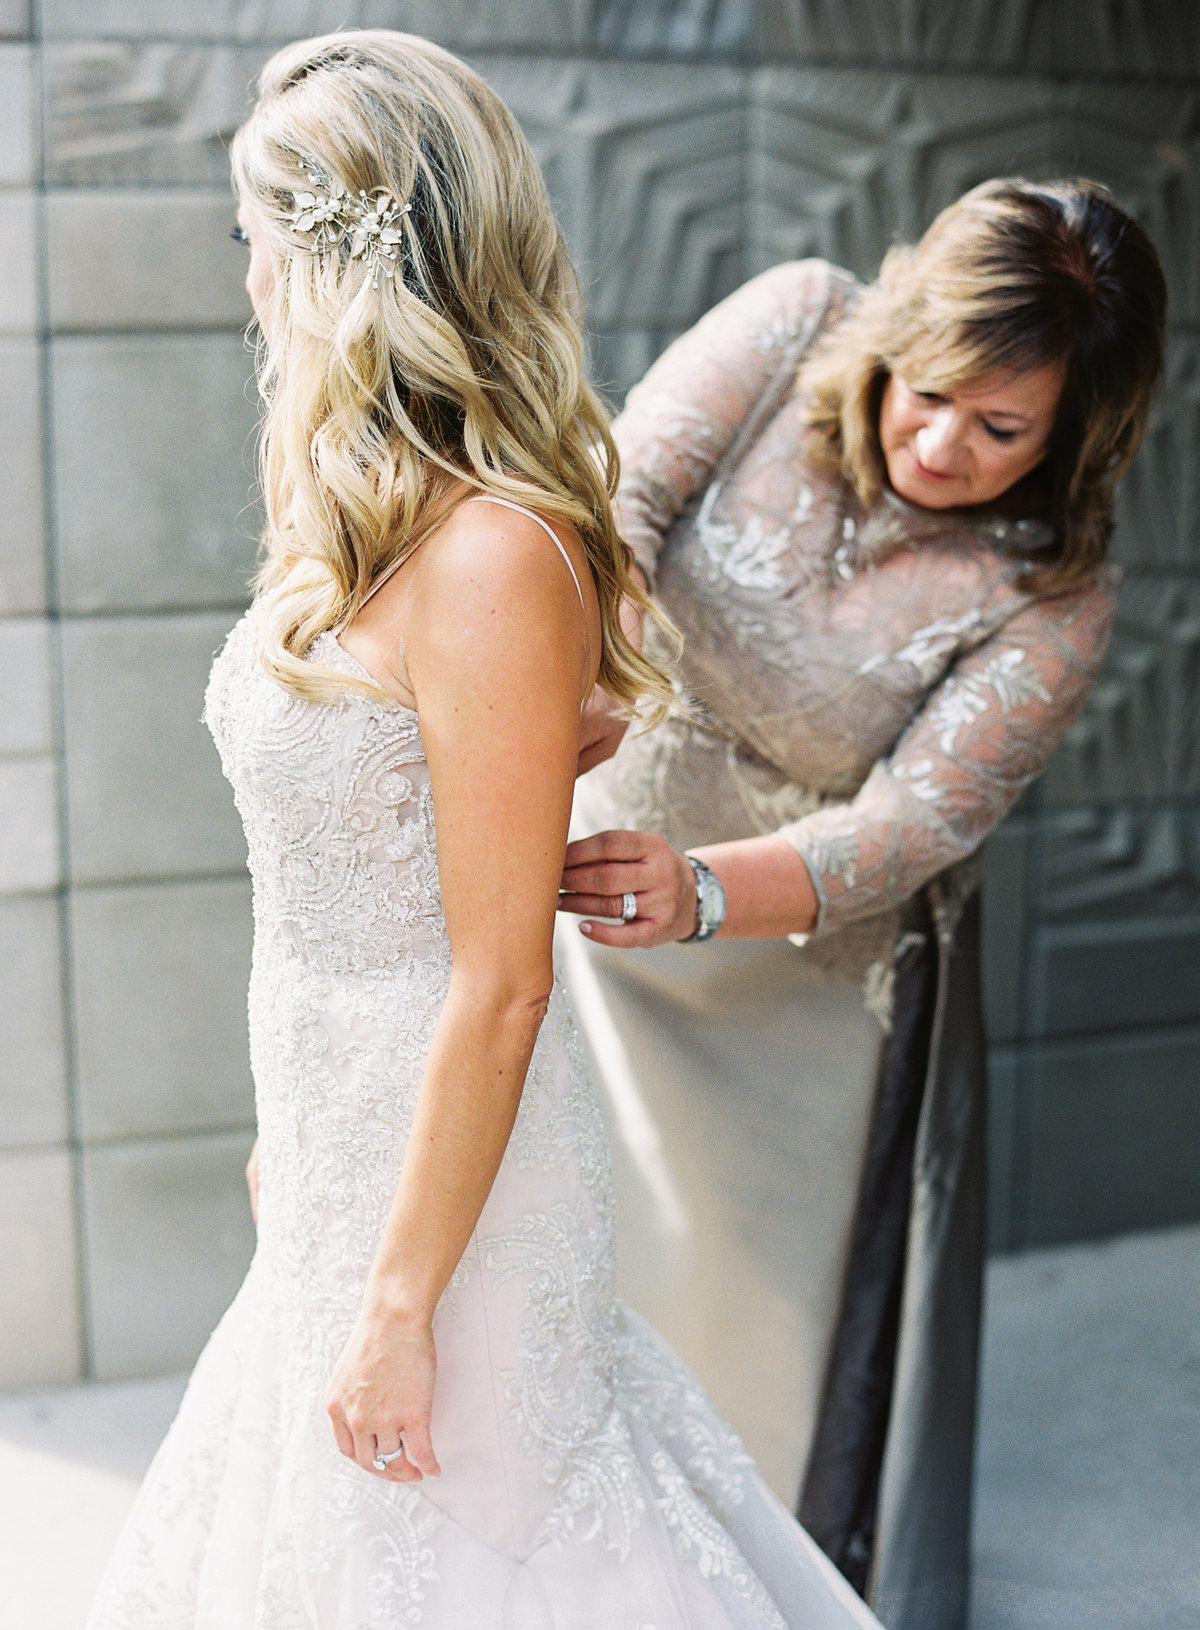 Arizona Biltmore Wedding - Mary Claire Photography-24